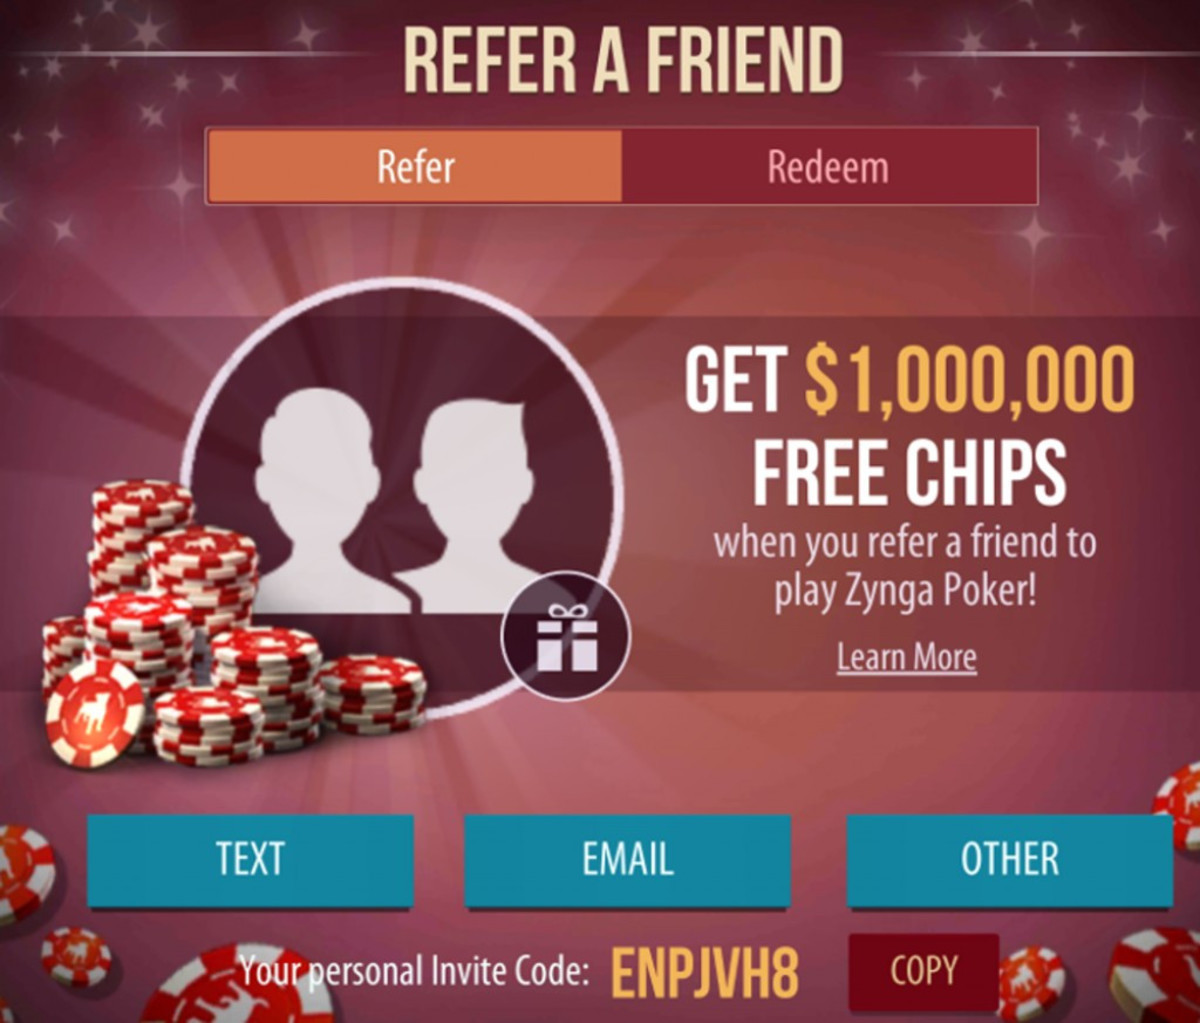 You can earn chips from inviting people to play.